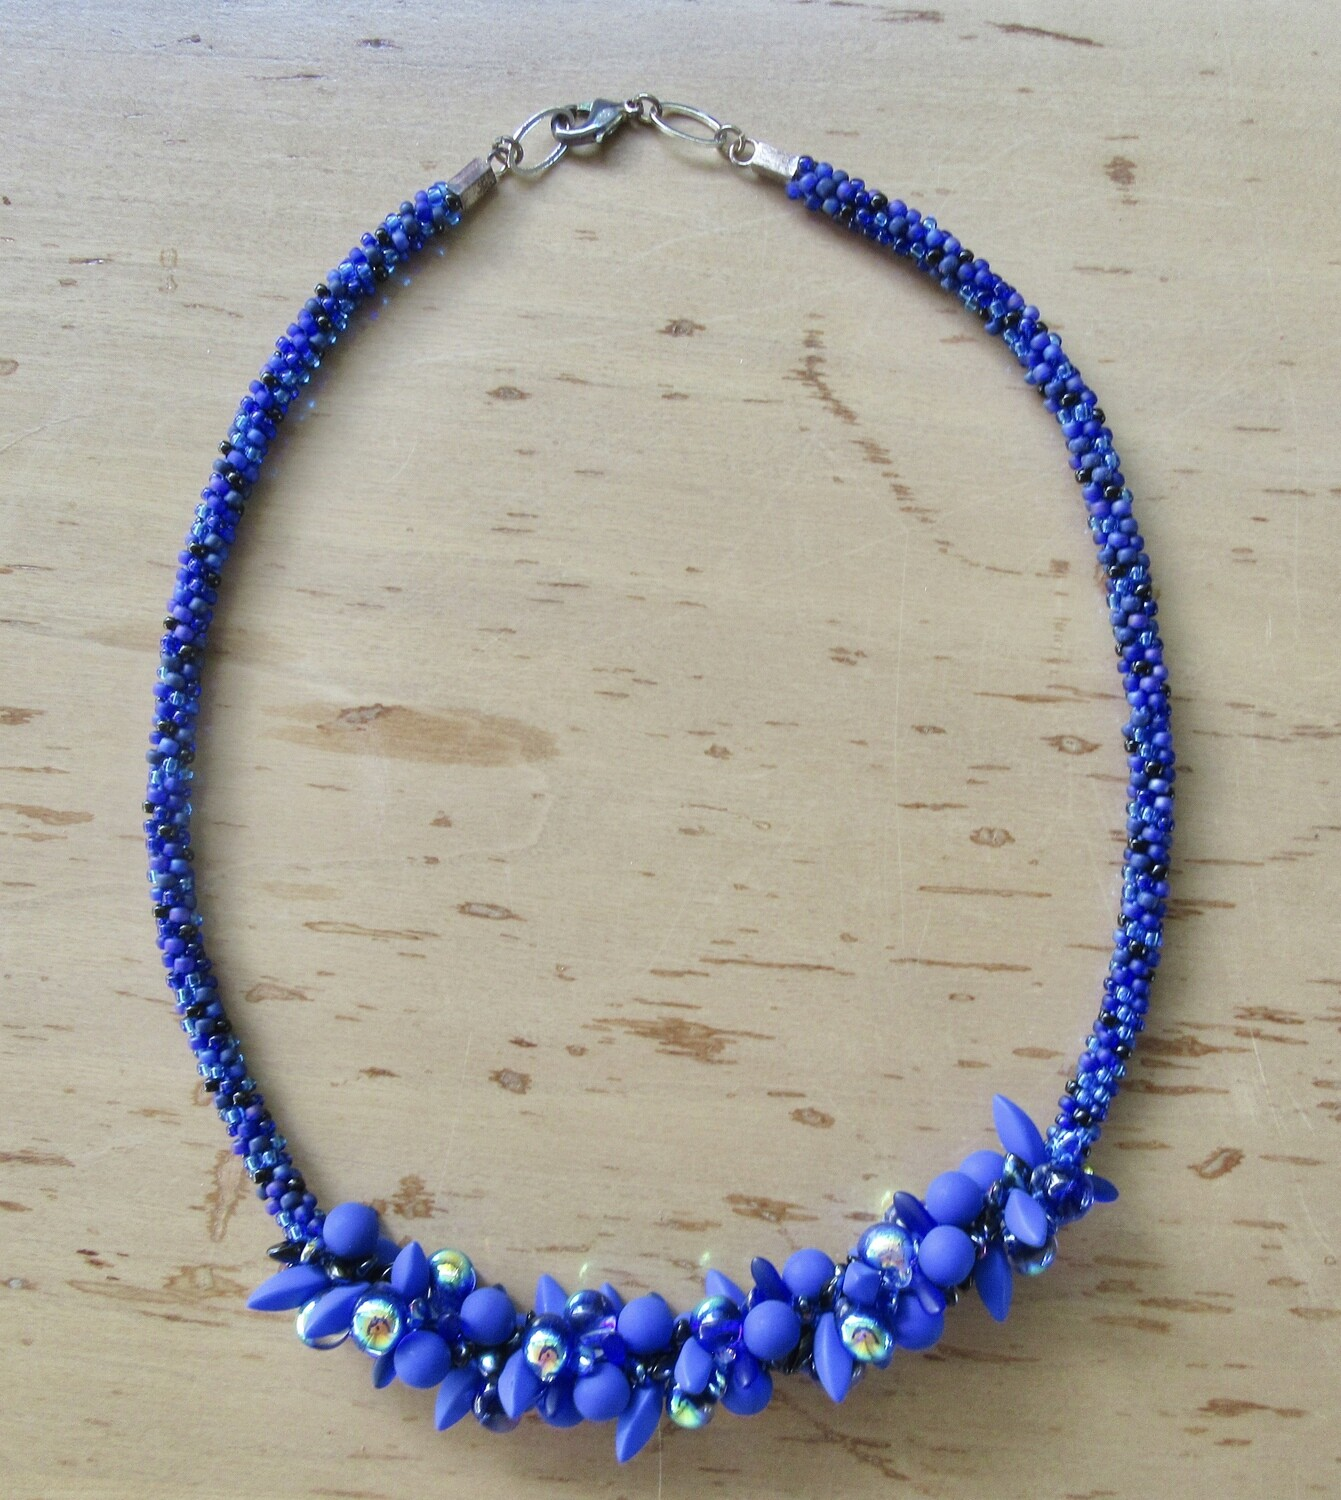 Blue beads cluster